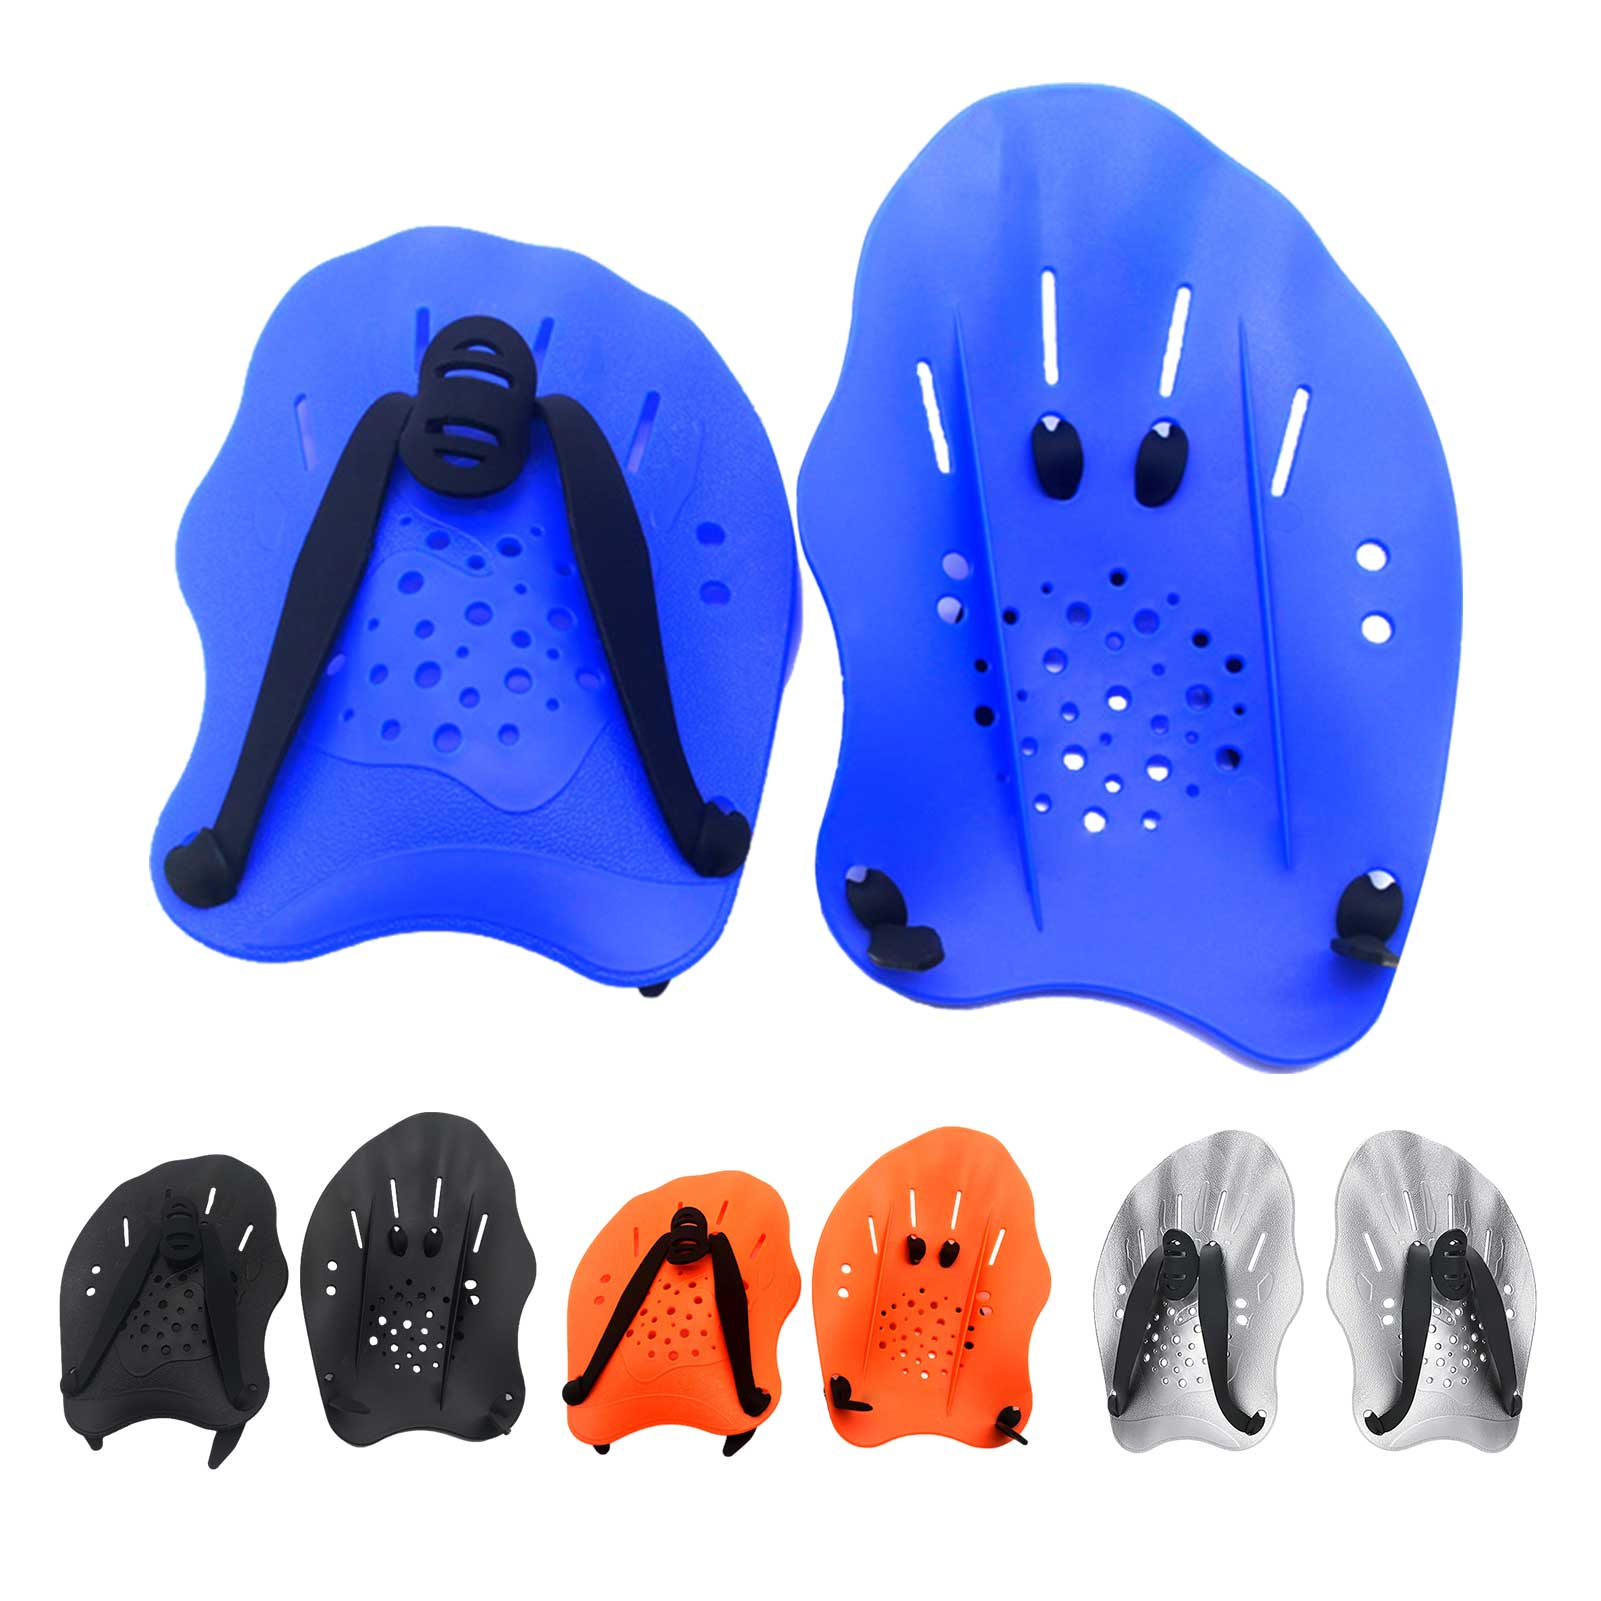 1 Pair Swimming Paddles Training Adjustable Hand Webbed Gloves Pad Fins Flippers For Men Women Kids adults unisex omouboi swimming security pfds black swim paddles hand gloves fins with over head inflatable snorkel rescue vest